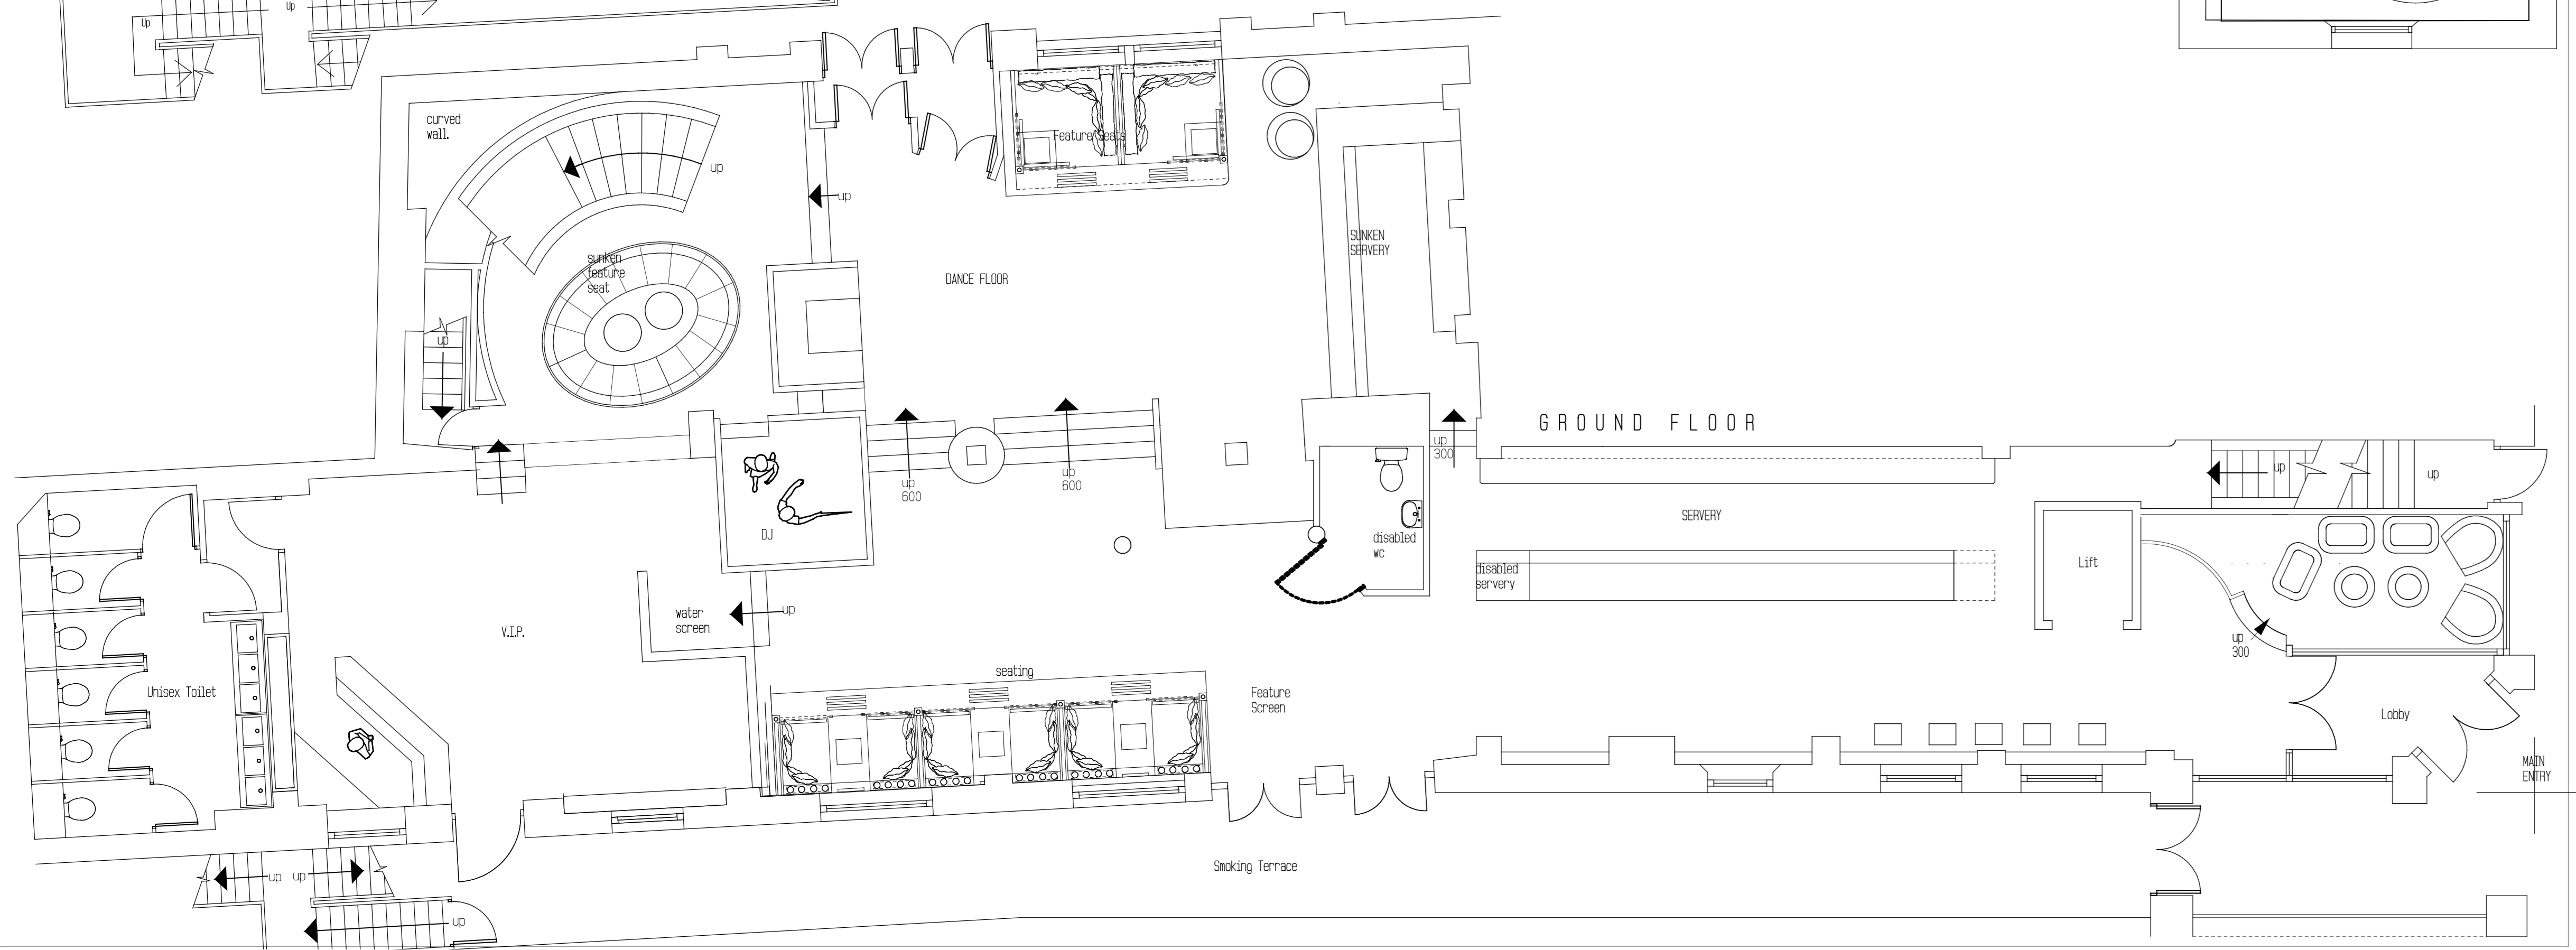 file tup tup palace floor plans jpg wikimedia commons file tup tup palace floor plans jpg